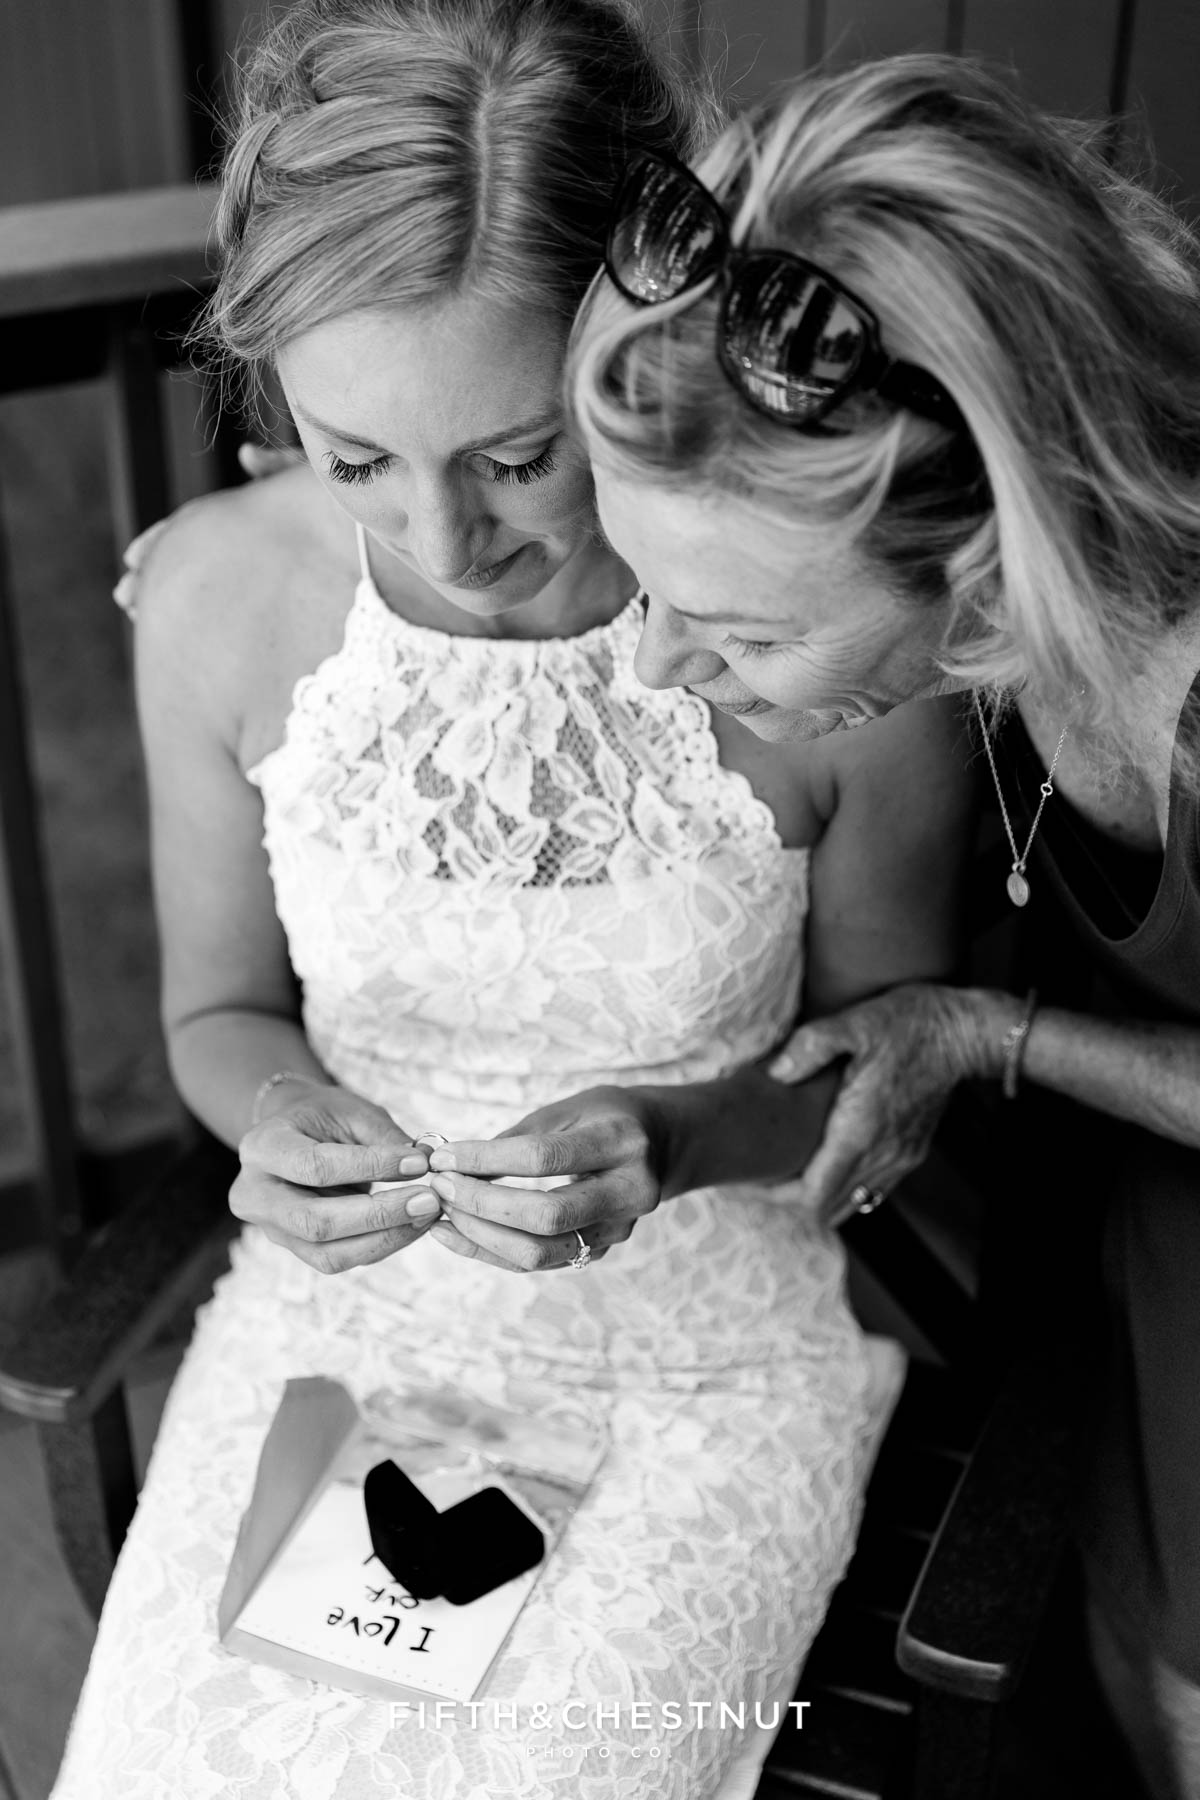 bride cries with her mom after opening a gift from her groom